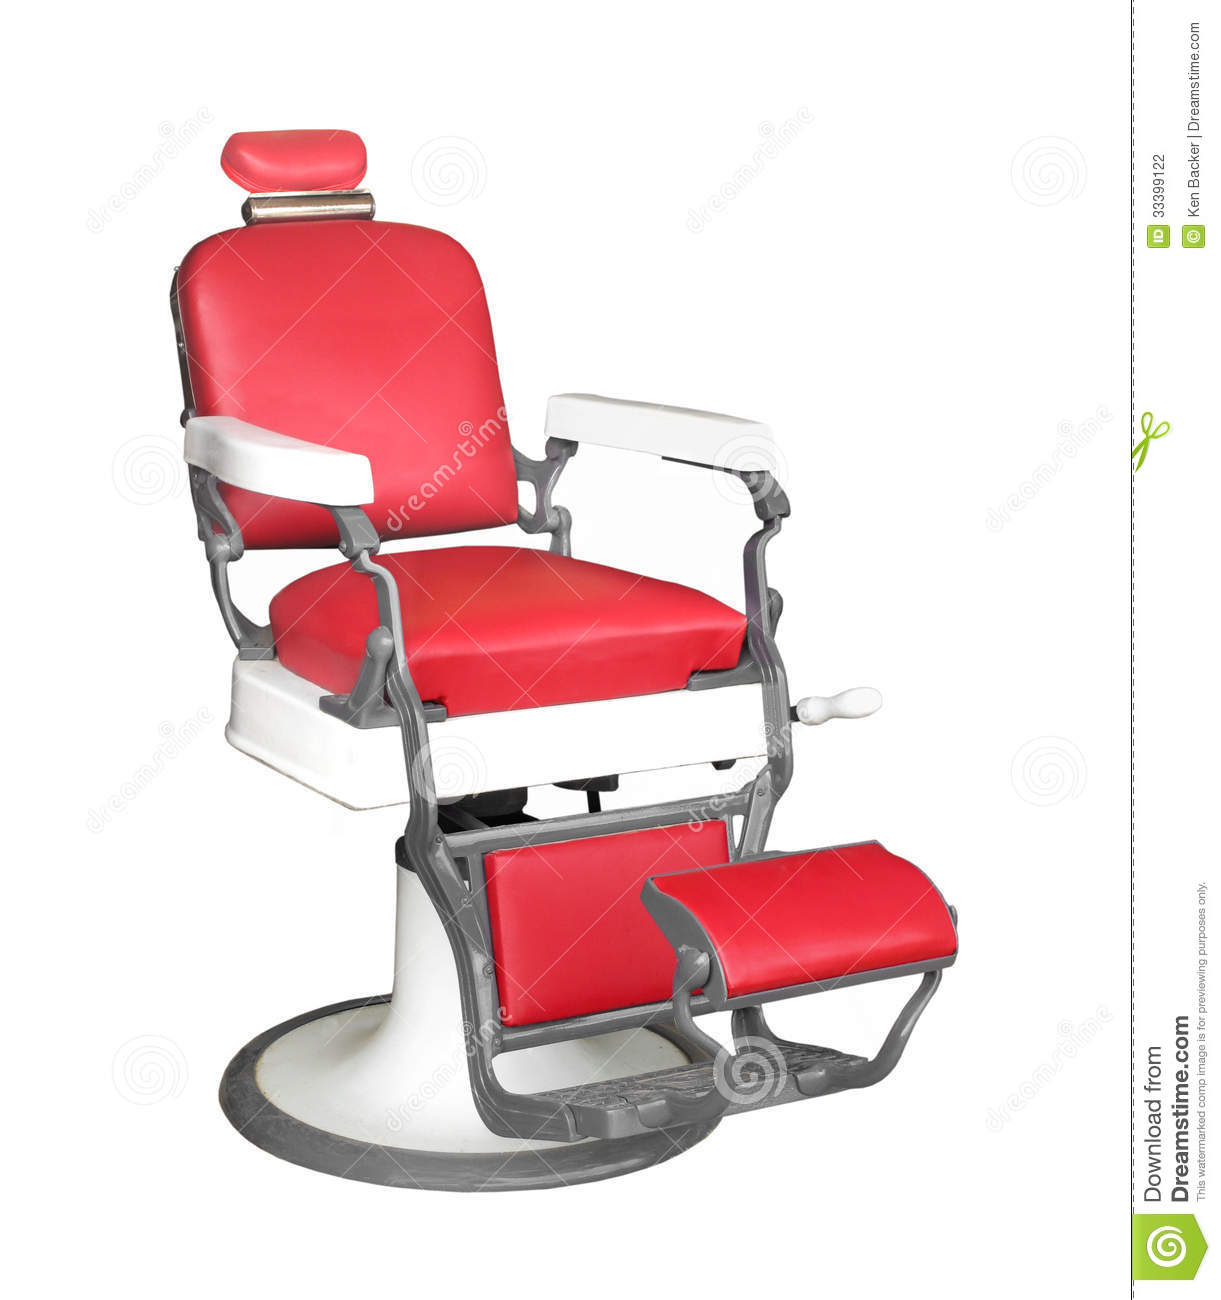 Old Barber Chairs Vintage Barber Chair Isolated Stock Photo Image 33399122